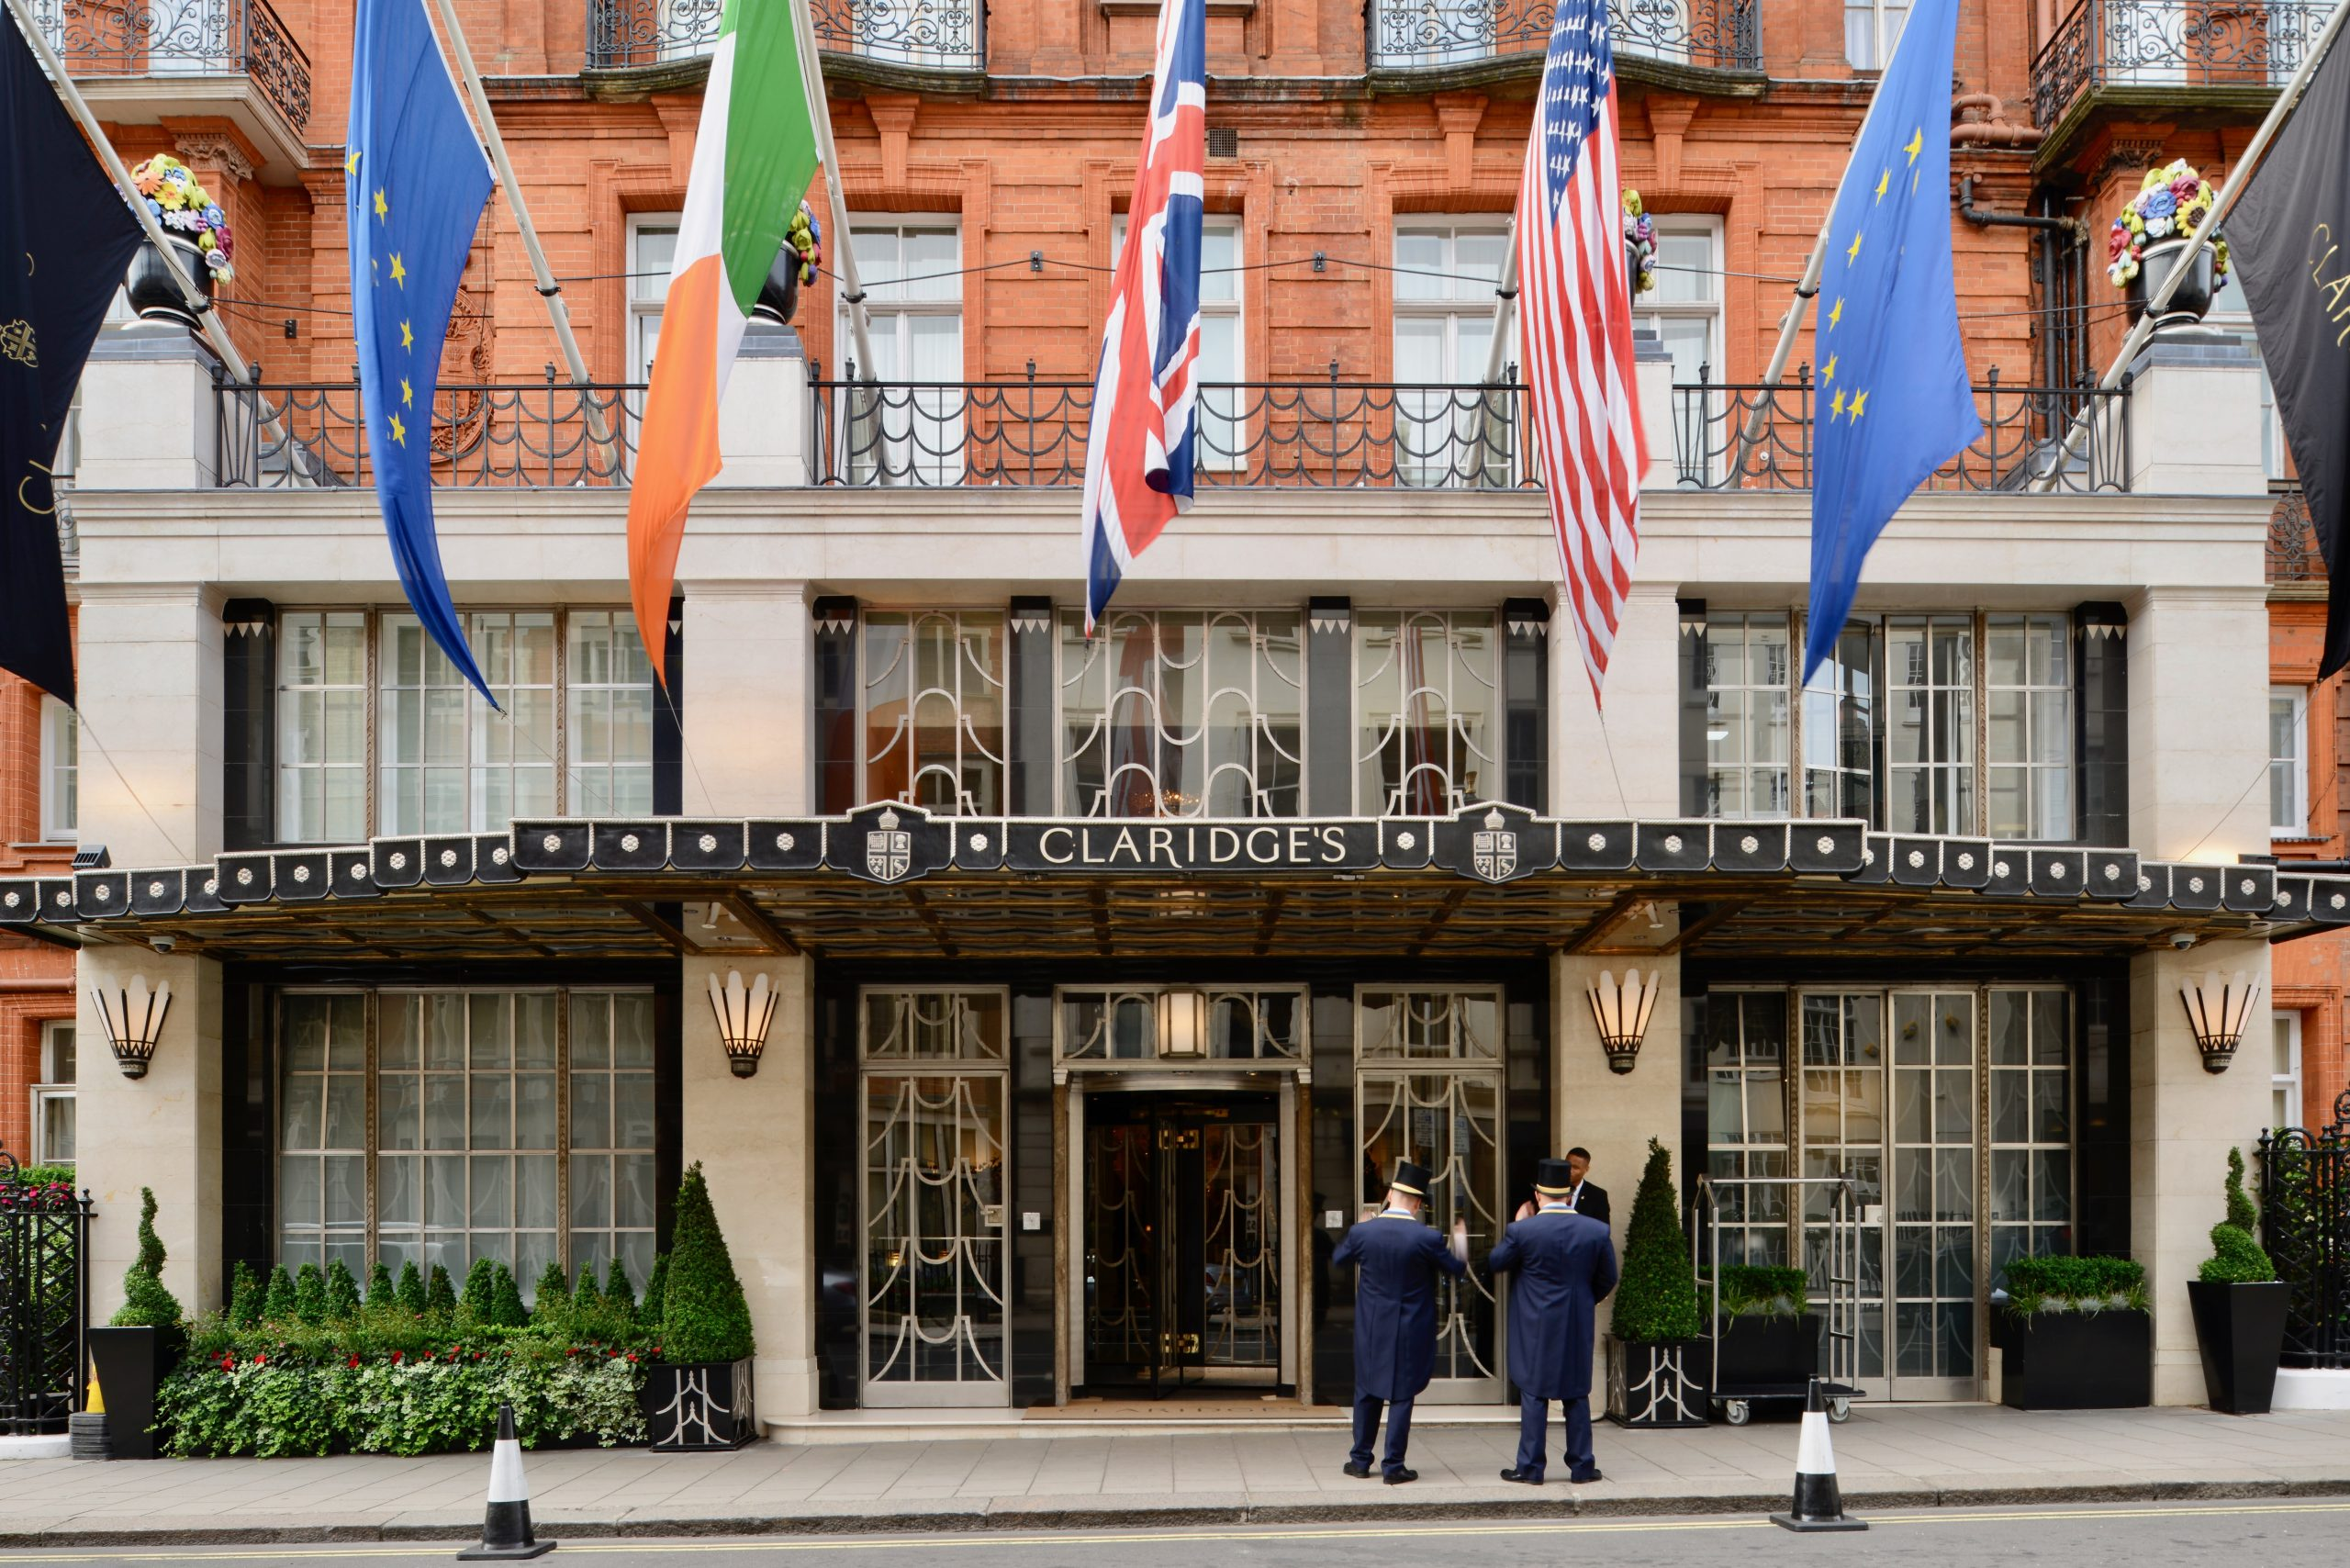 Claridges Hotel - Photo Elain Harwood